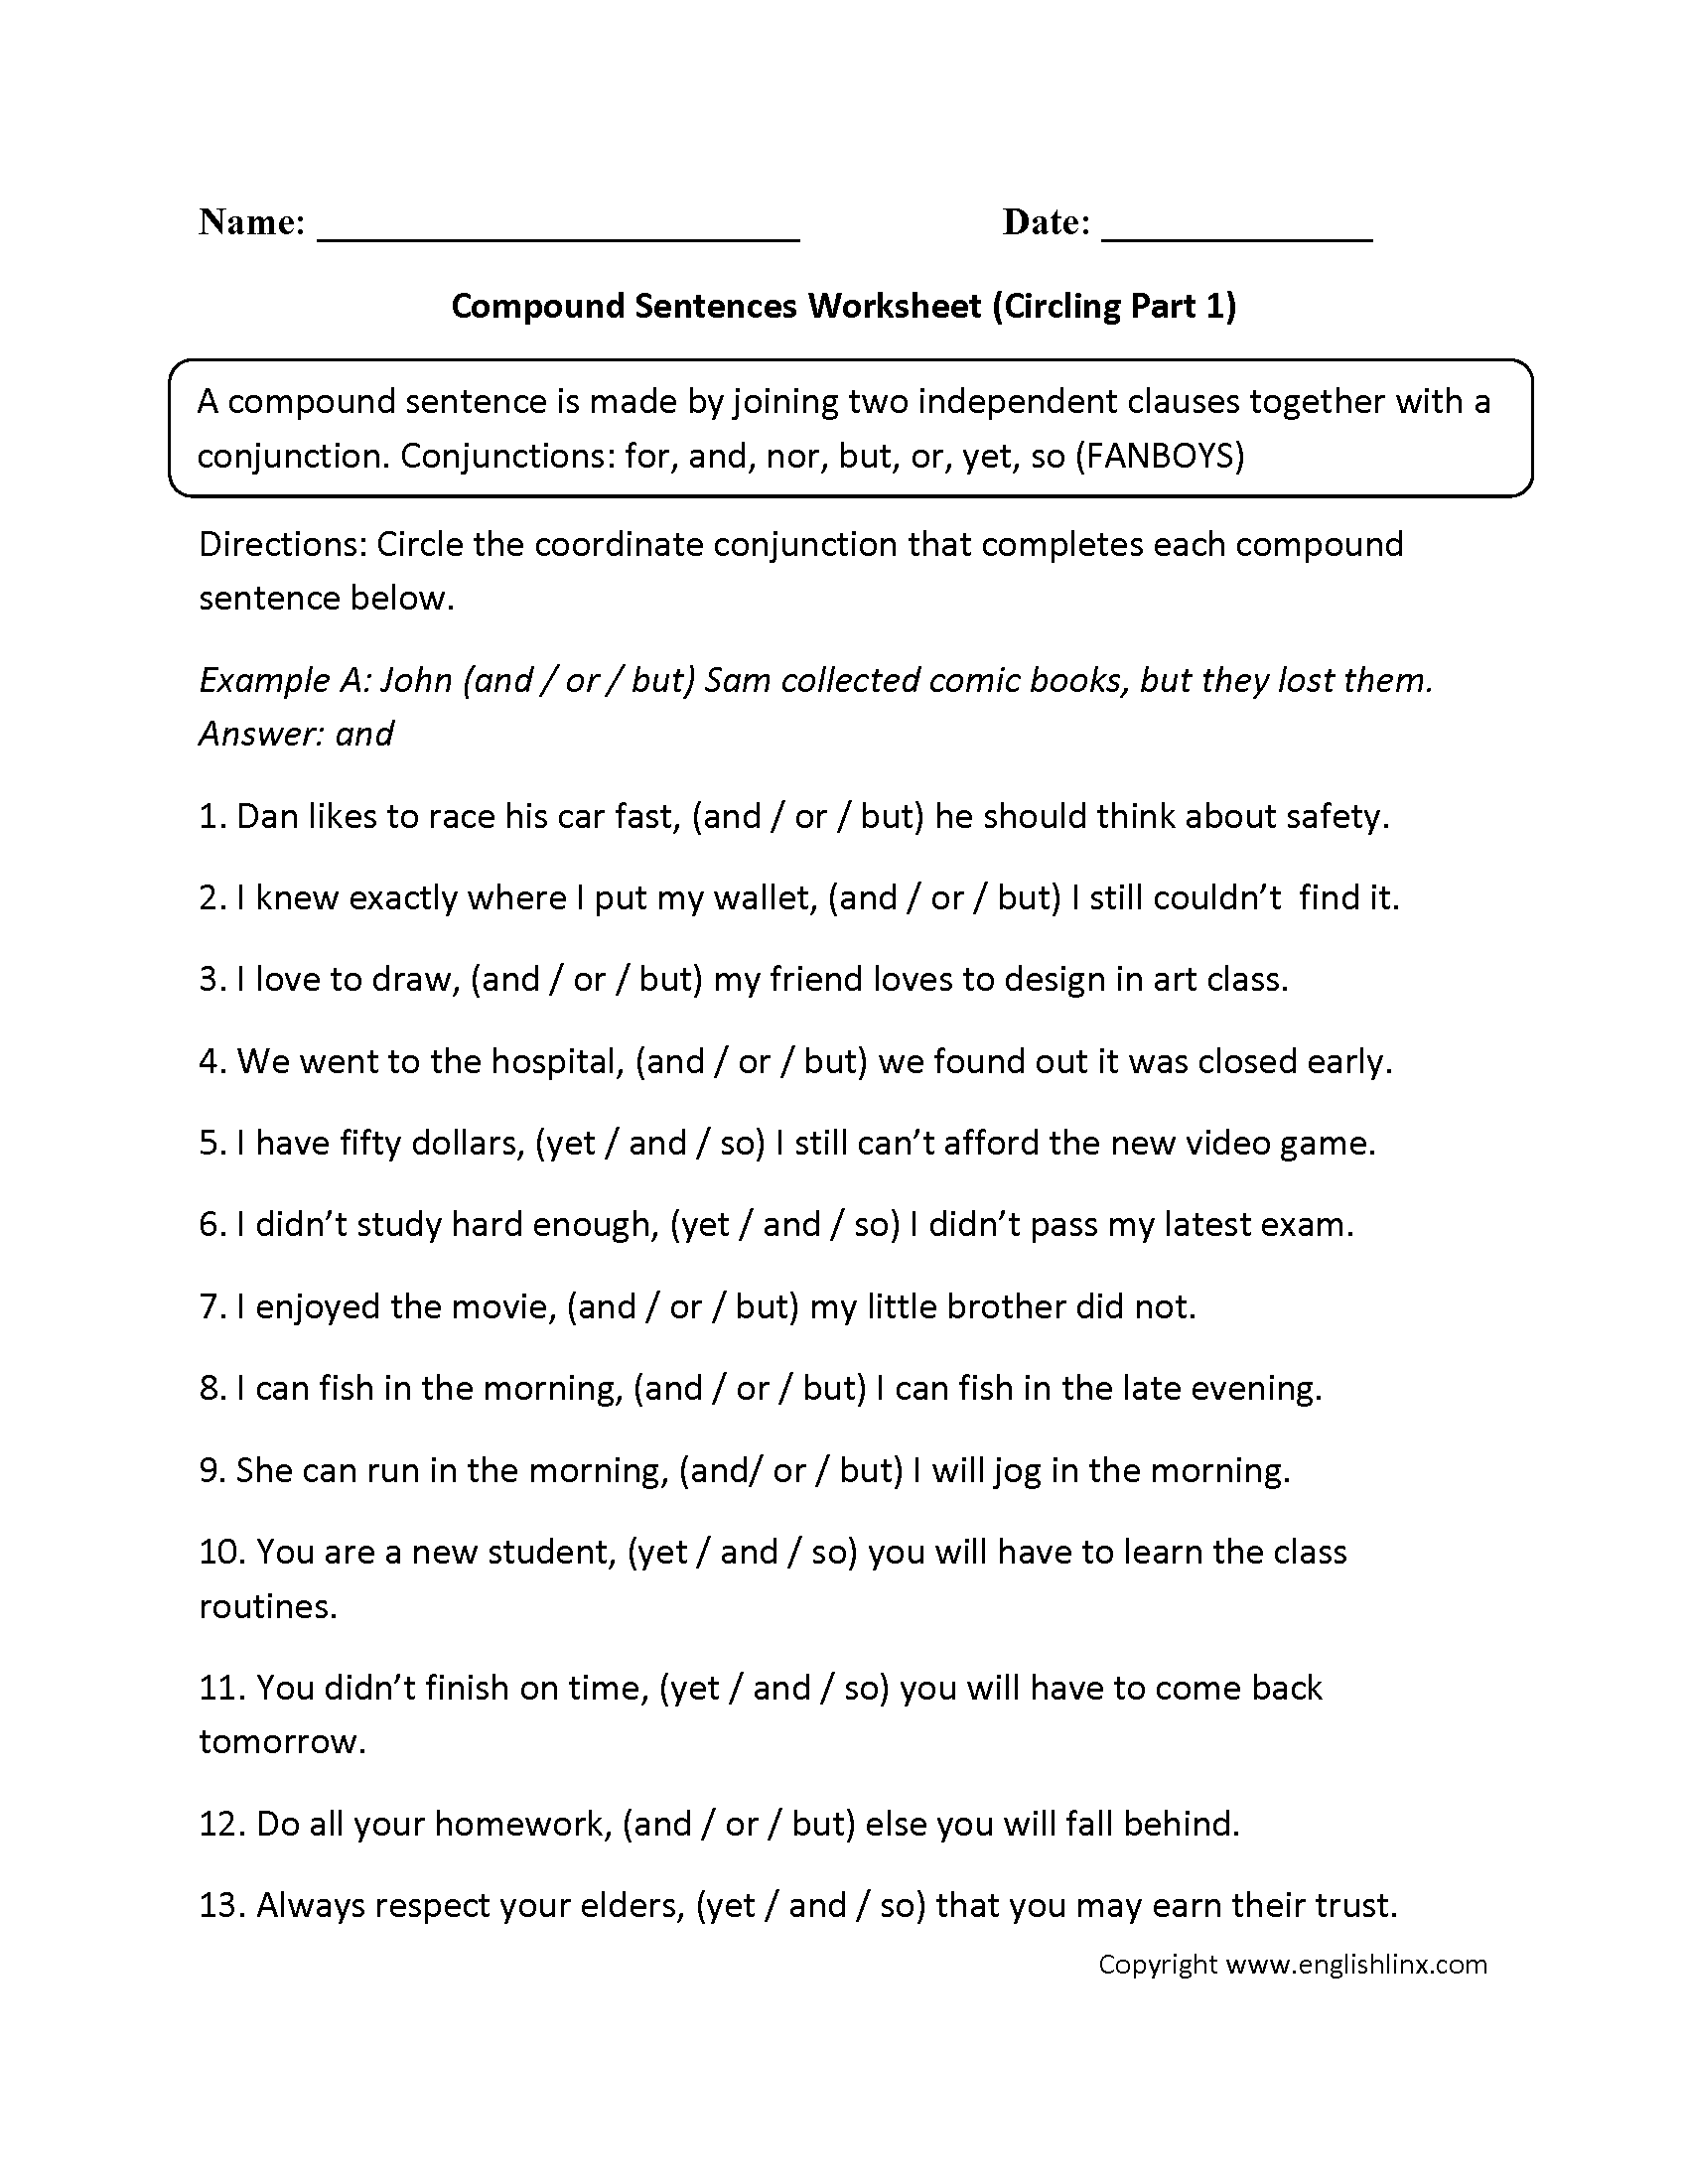 Worksheets Compound Sentences Worksheets Cheatslist Free Worksheets For Kids Amp Printable